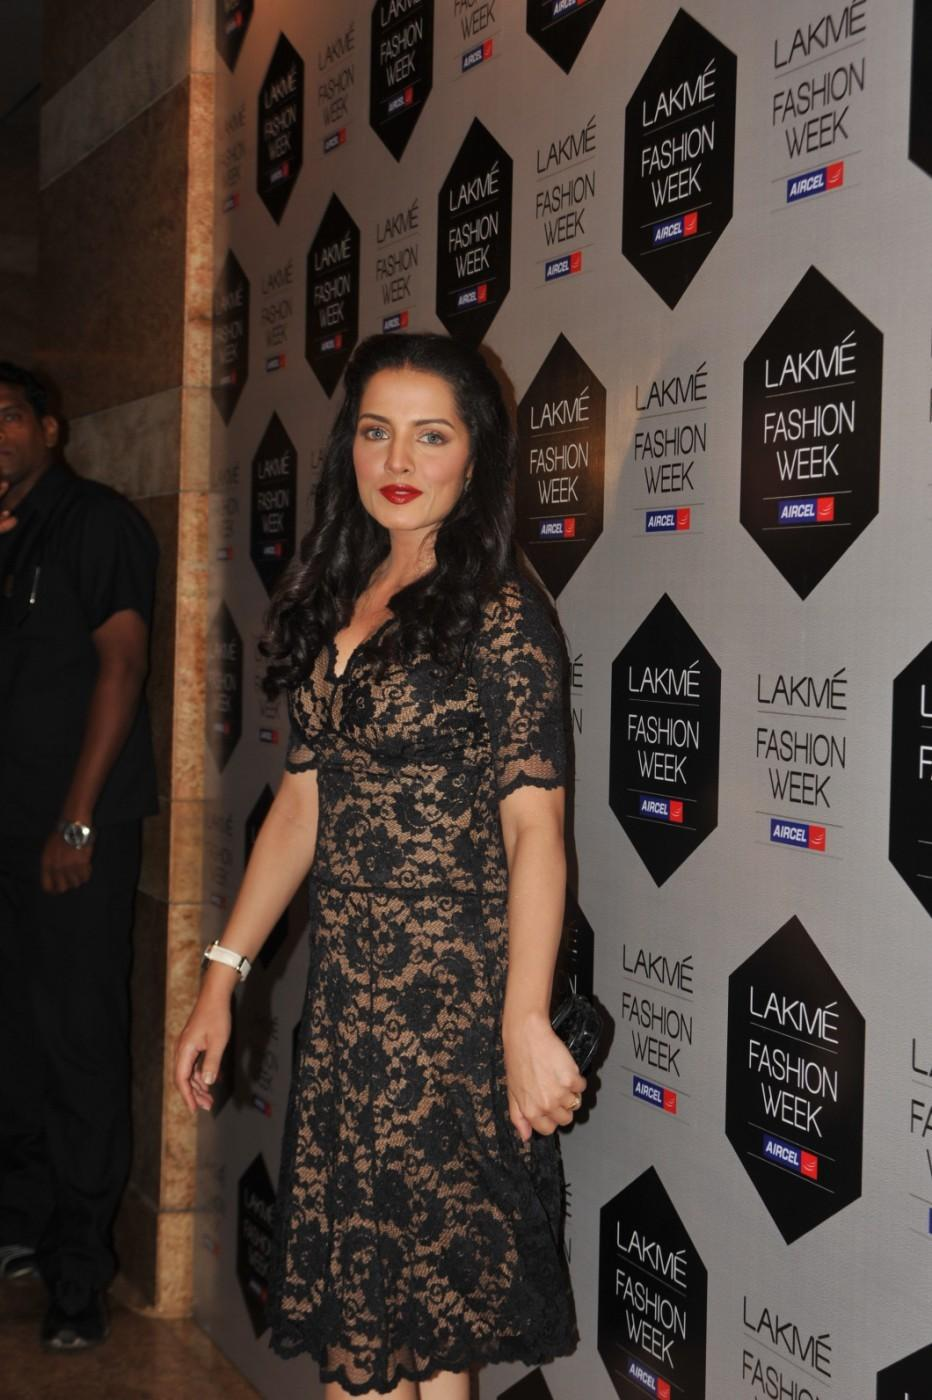 Lakme Fashion Week 2012 Day 5 Photo - Celina Jaitley Cute Look